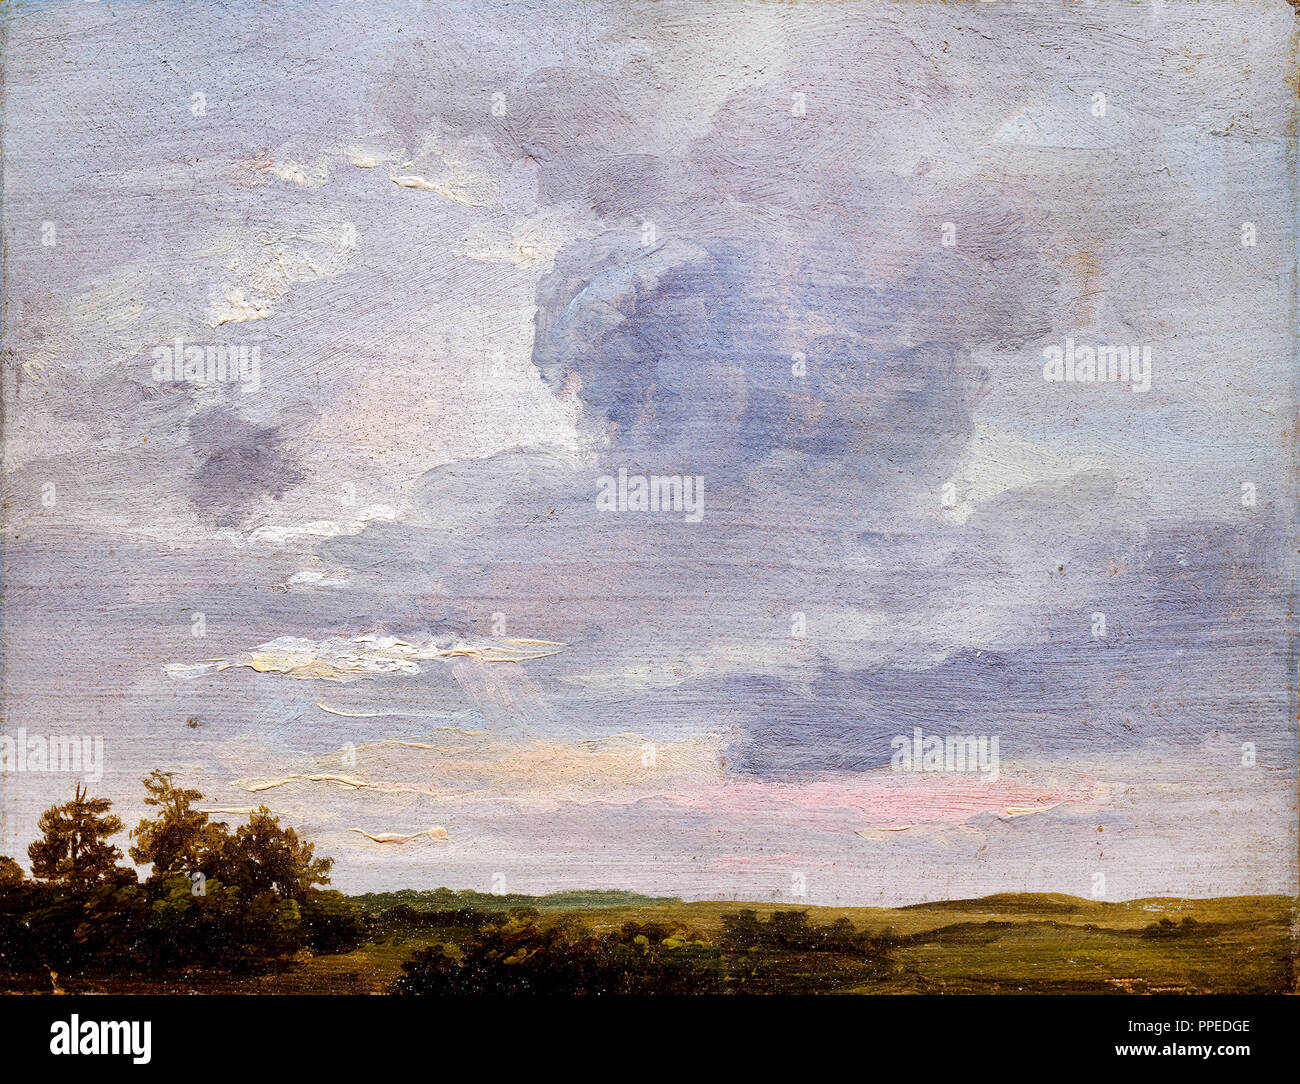 Johan Christian Dahl - Cloud Study Over Flat Landscape 1837 Oil on paper. National Gallery of Norway, Oslo, Norway. - Stock Image